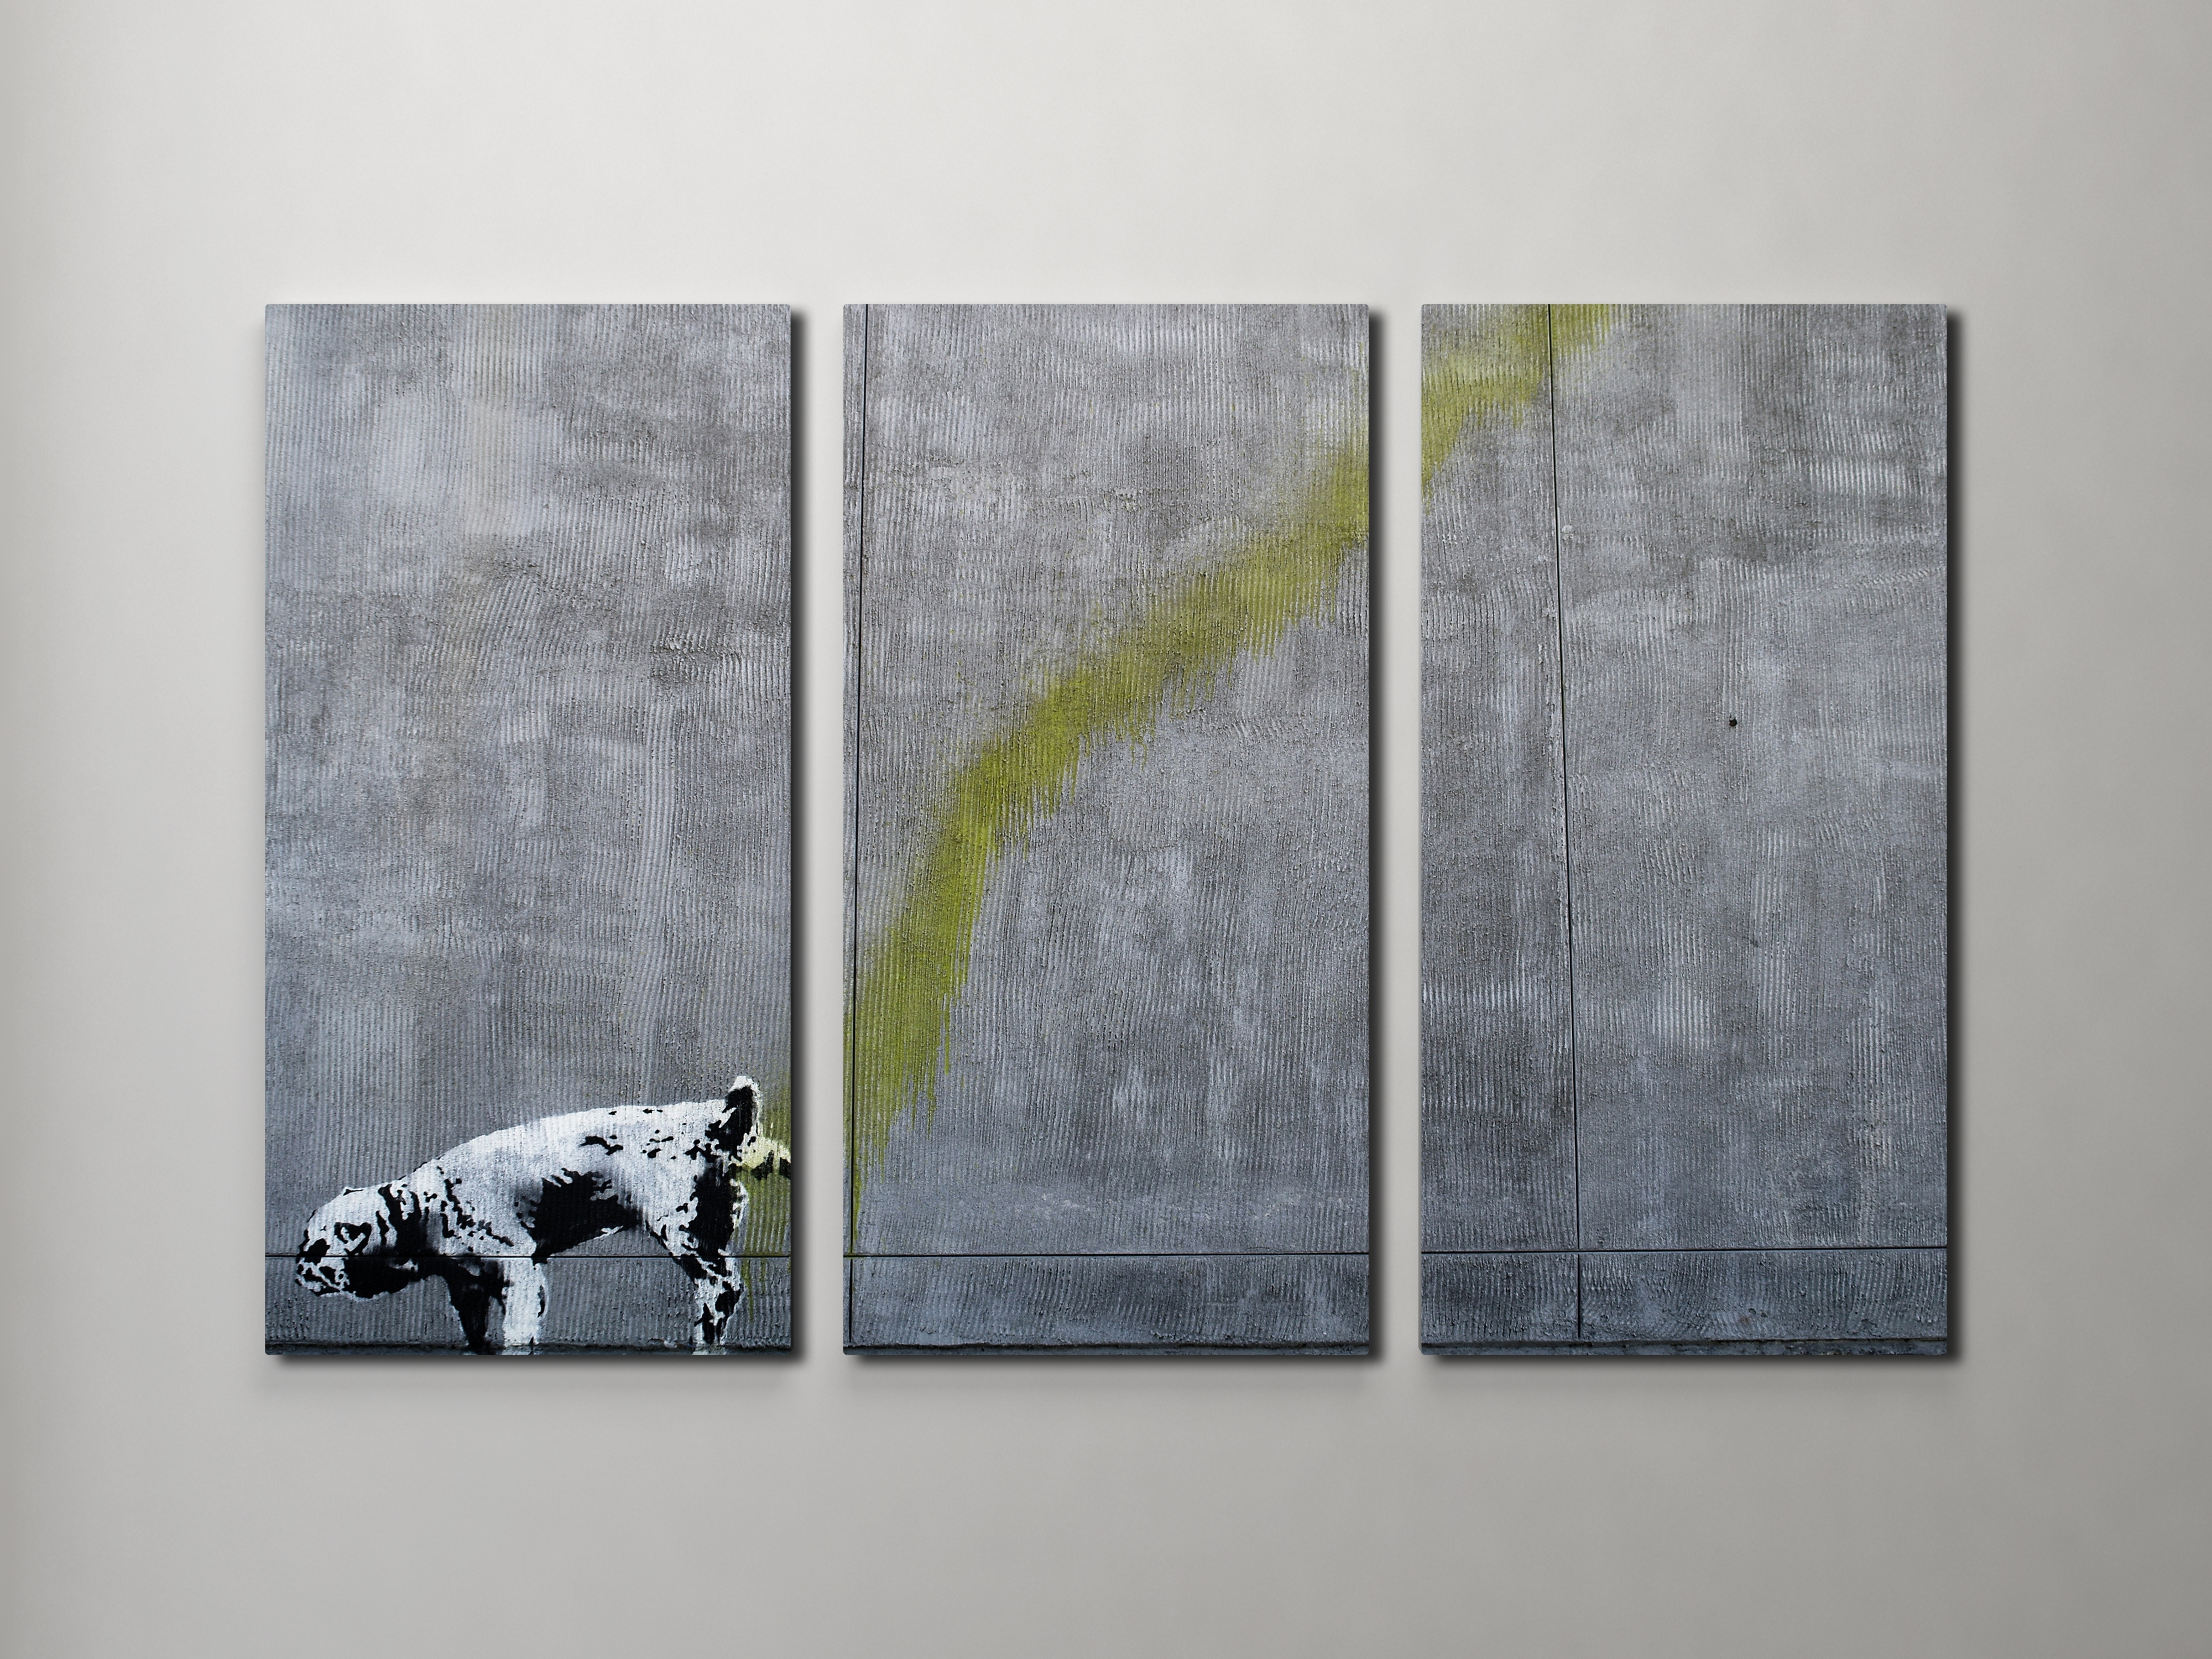 Most Recently Released Triptych Wall Art With Regard To Banksy Pissing Dog Triptych Canvas Wall Art (View 4 of 15)